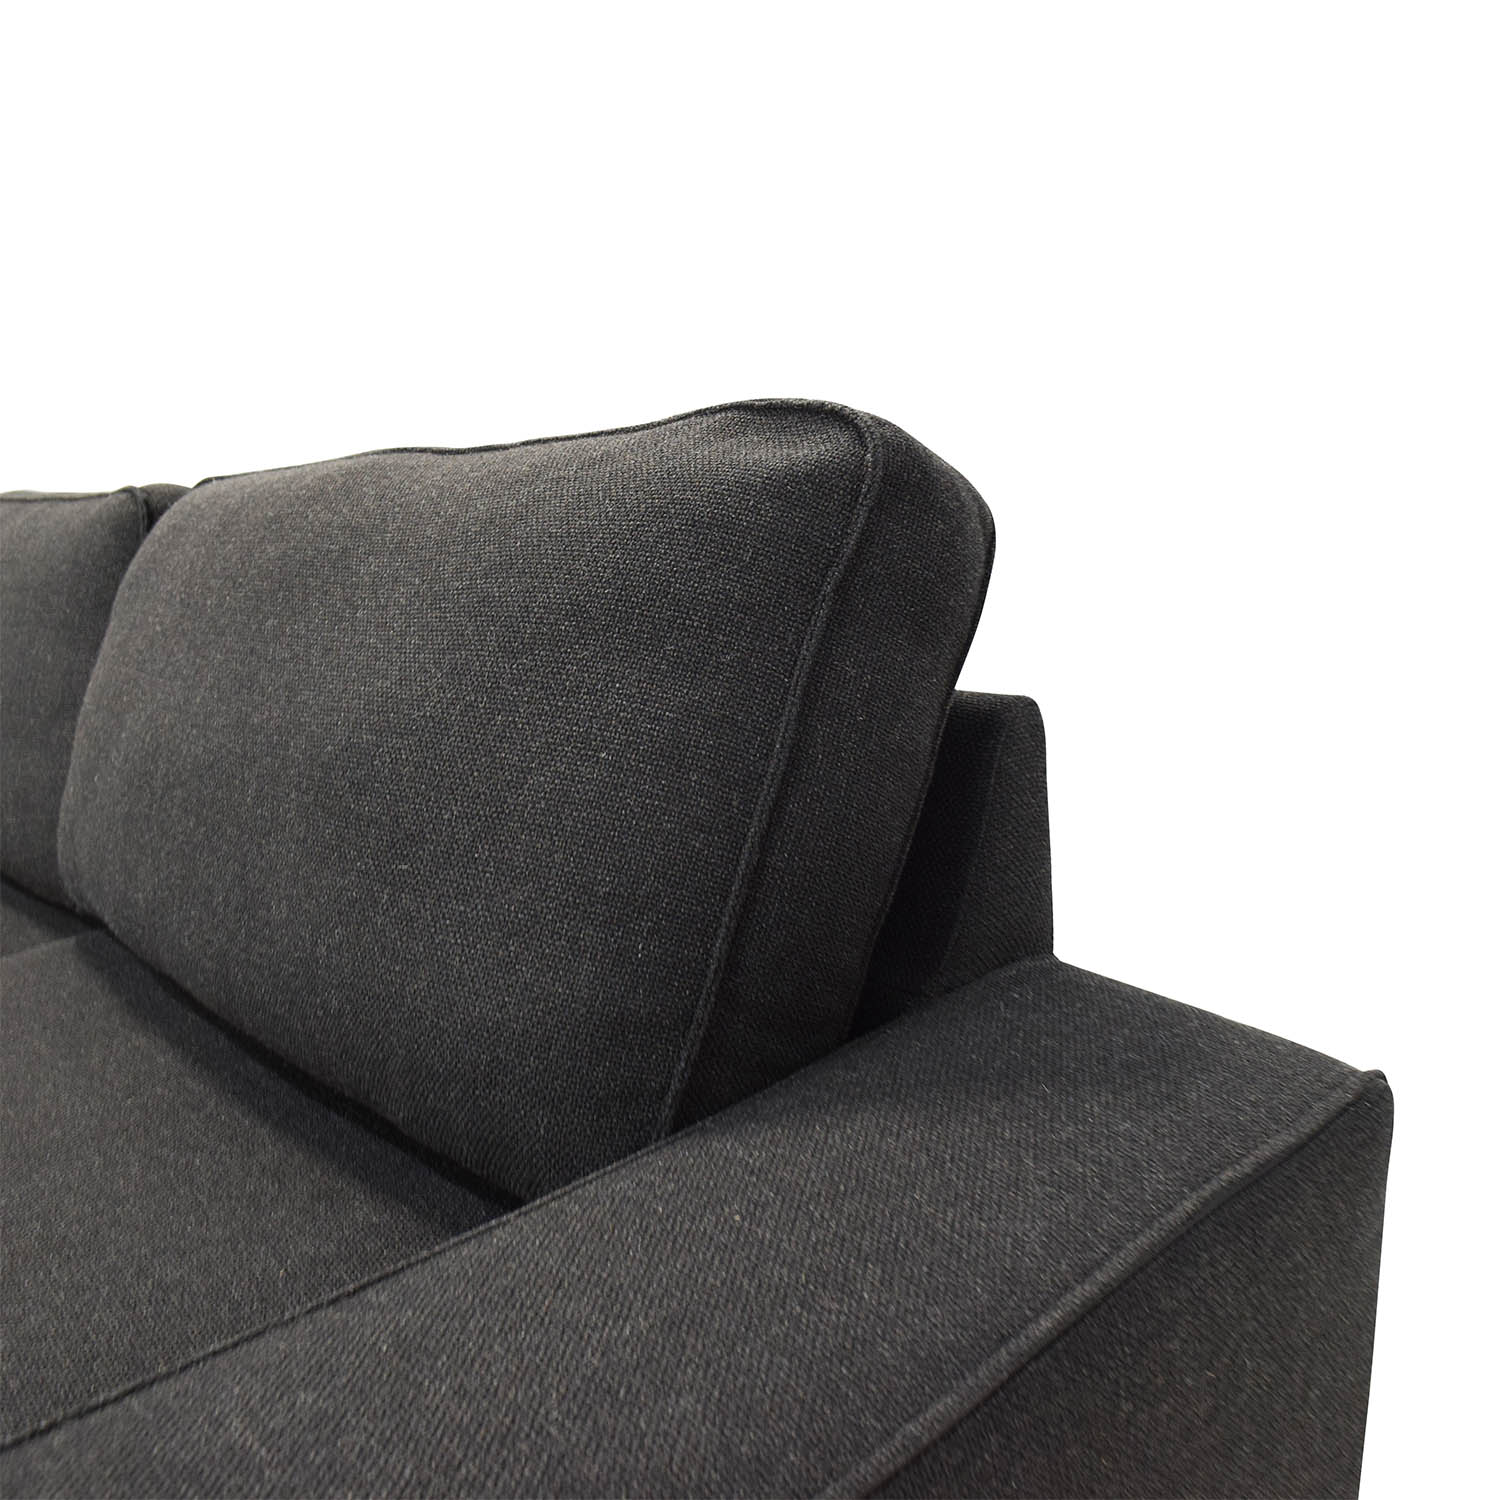 large sectional sofa with ottoman black leather set price 81 off ikea oversized and sofas